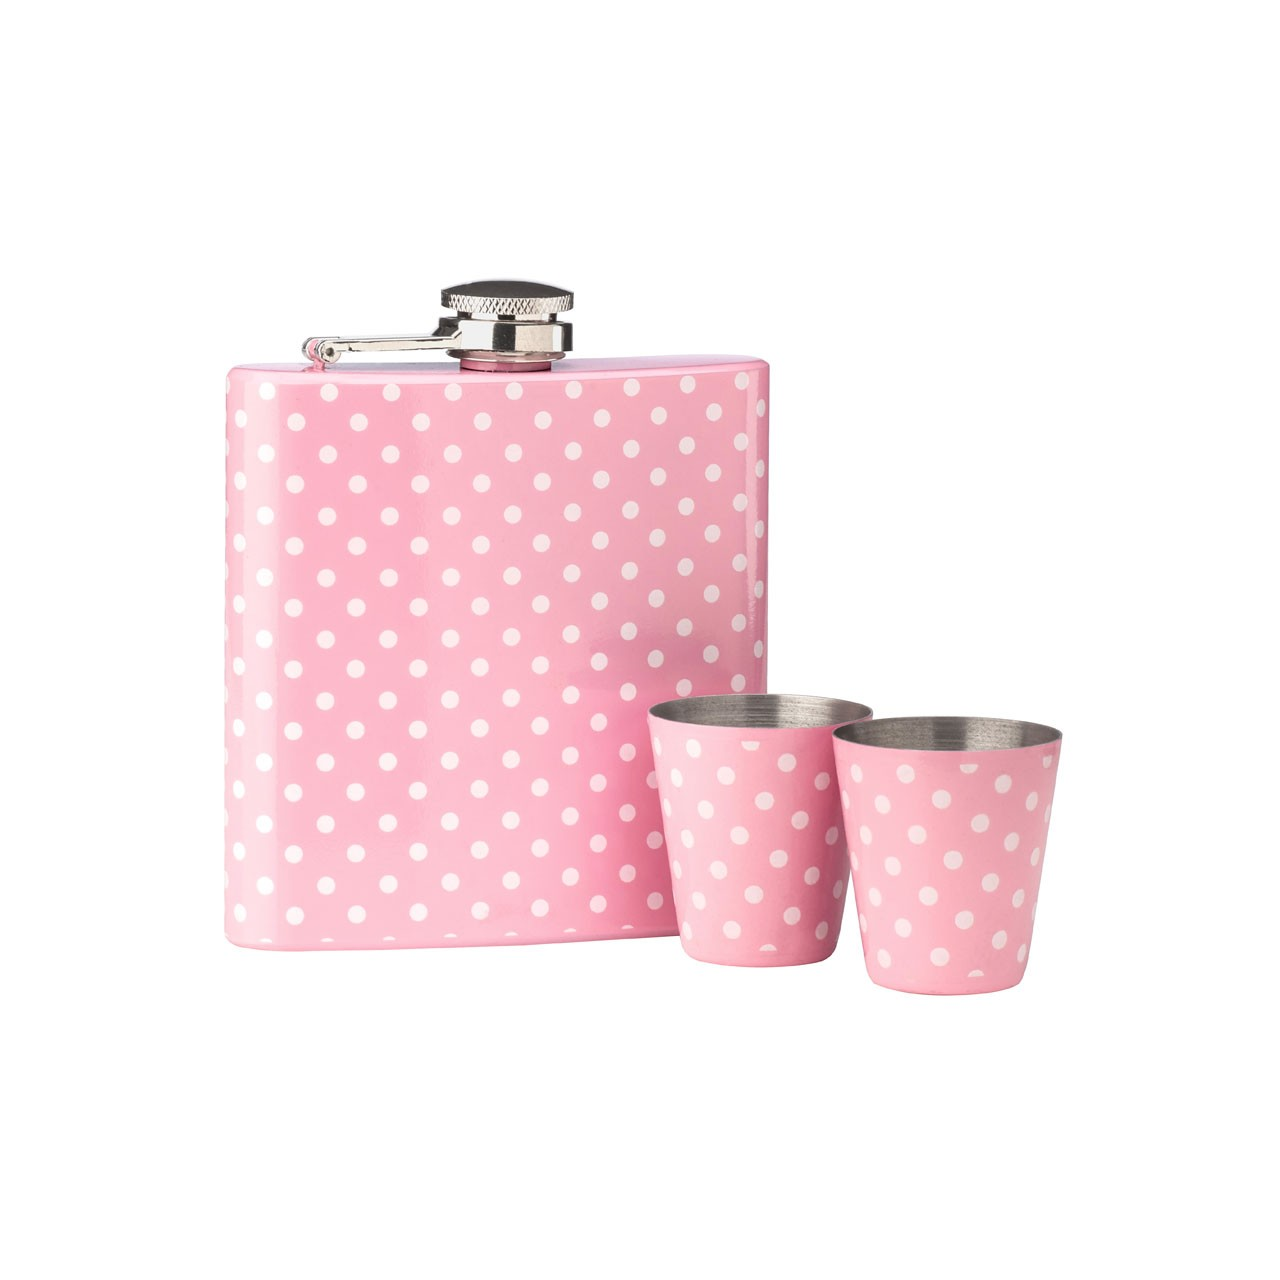 6 oz Polka Dot Design Hip Flask Set, Pink